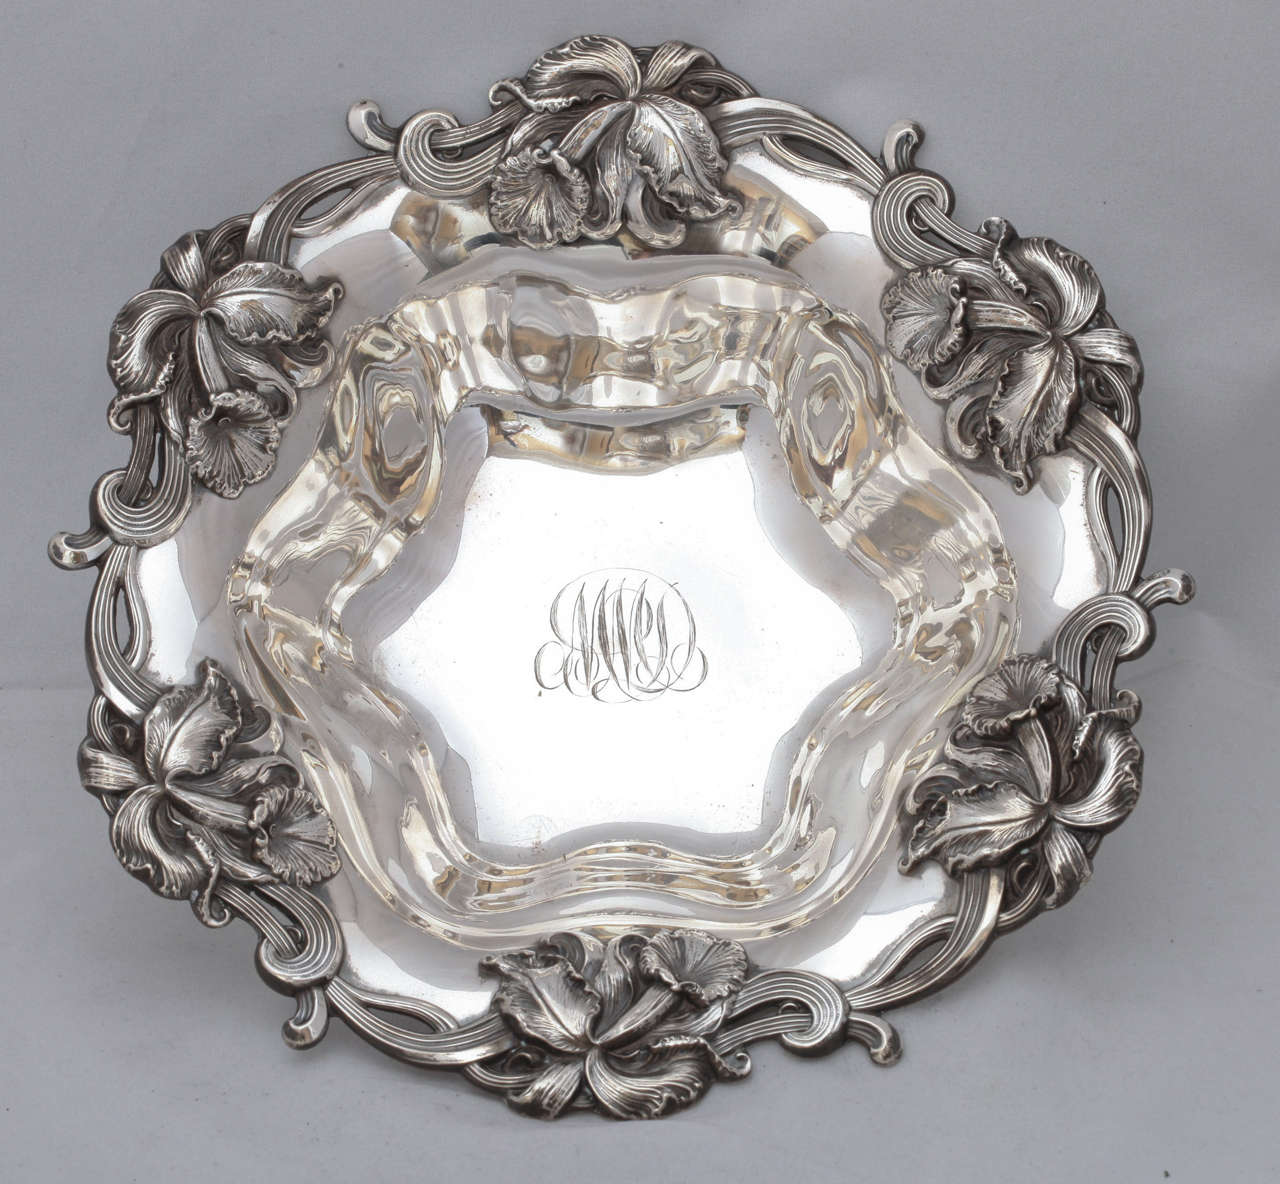 Art Nouveau Sterling Silver Centerpiece Or Serving Bowl At